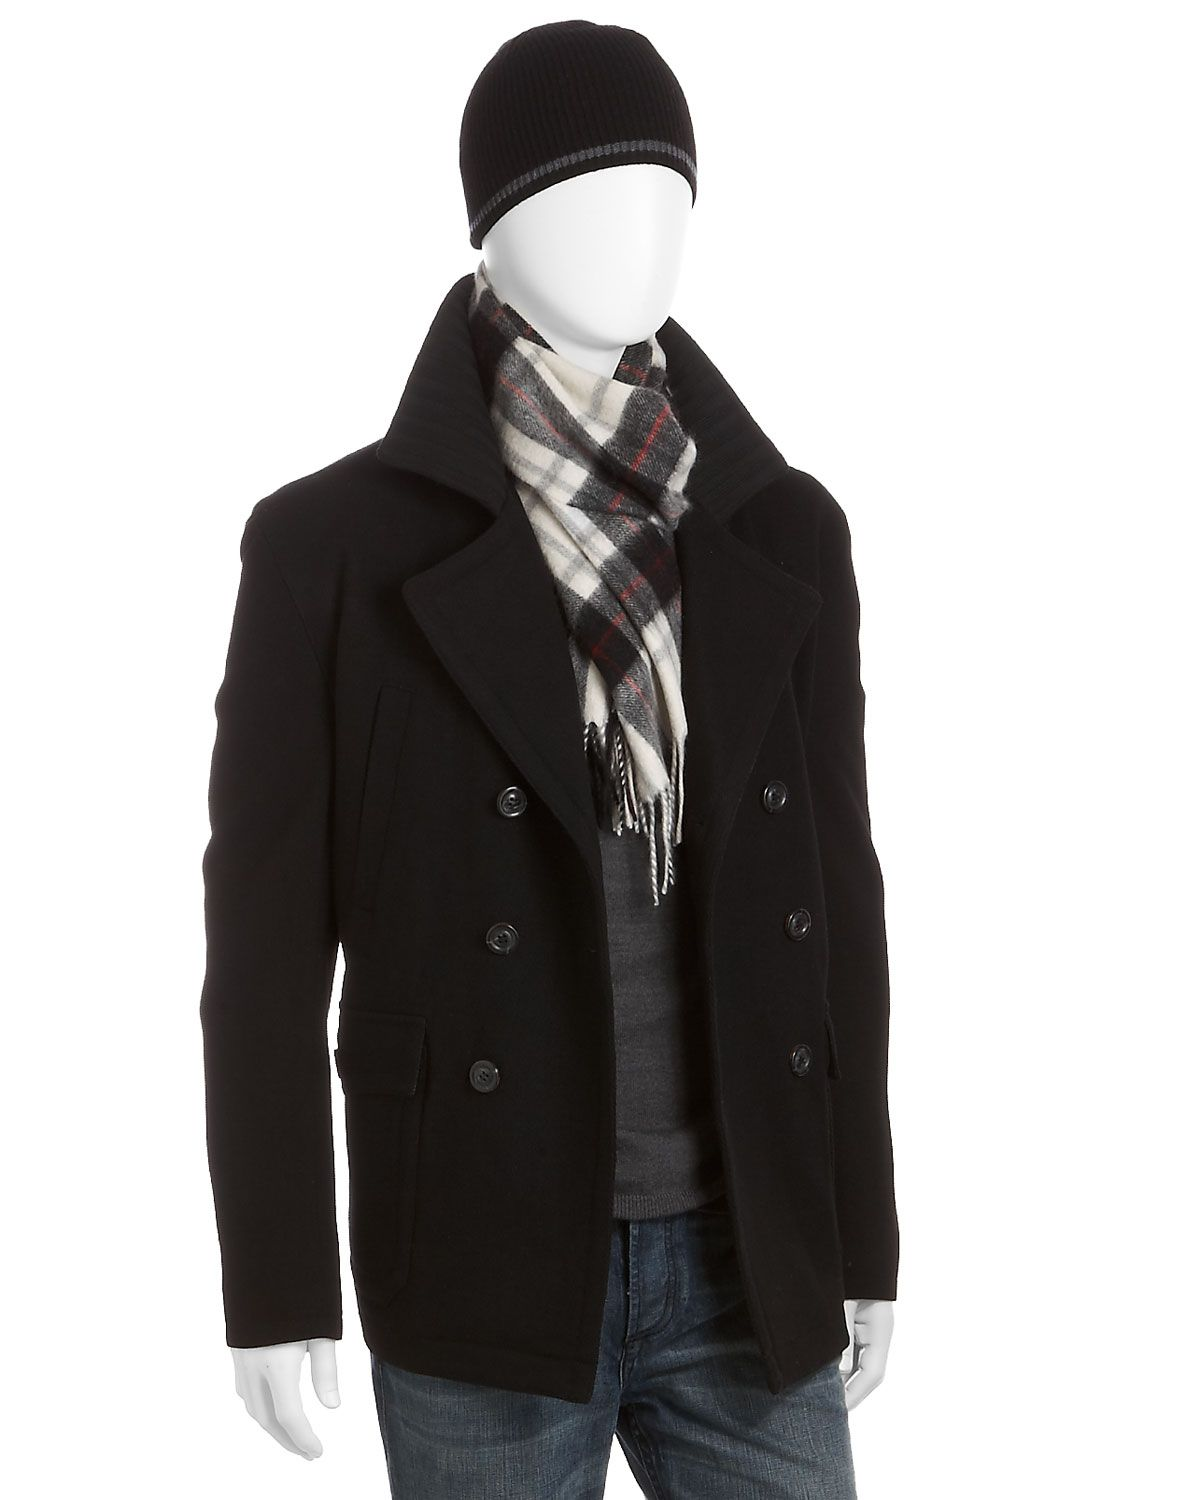 got it all except the scarf, and the hat looks 'tarded. no thanks. ill take everything neck down.